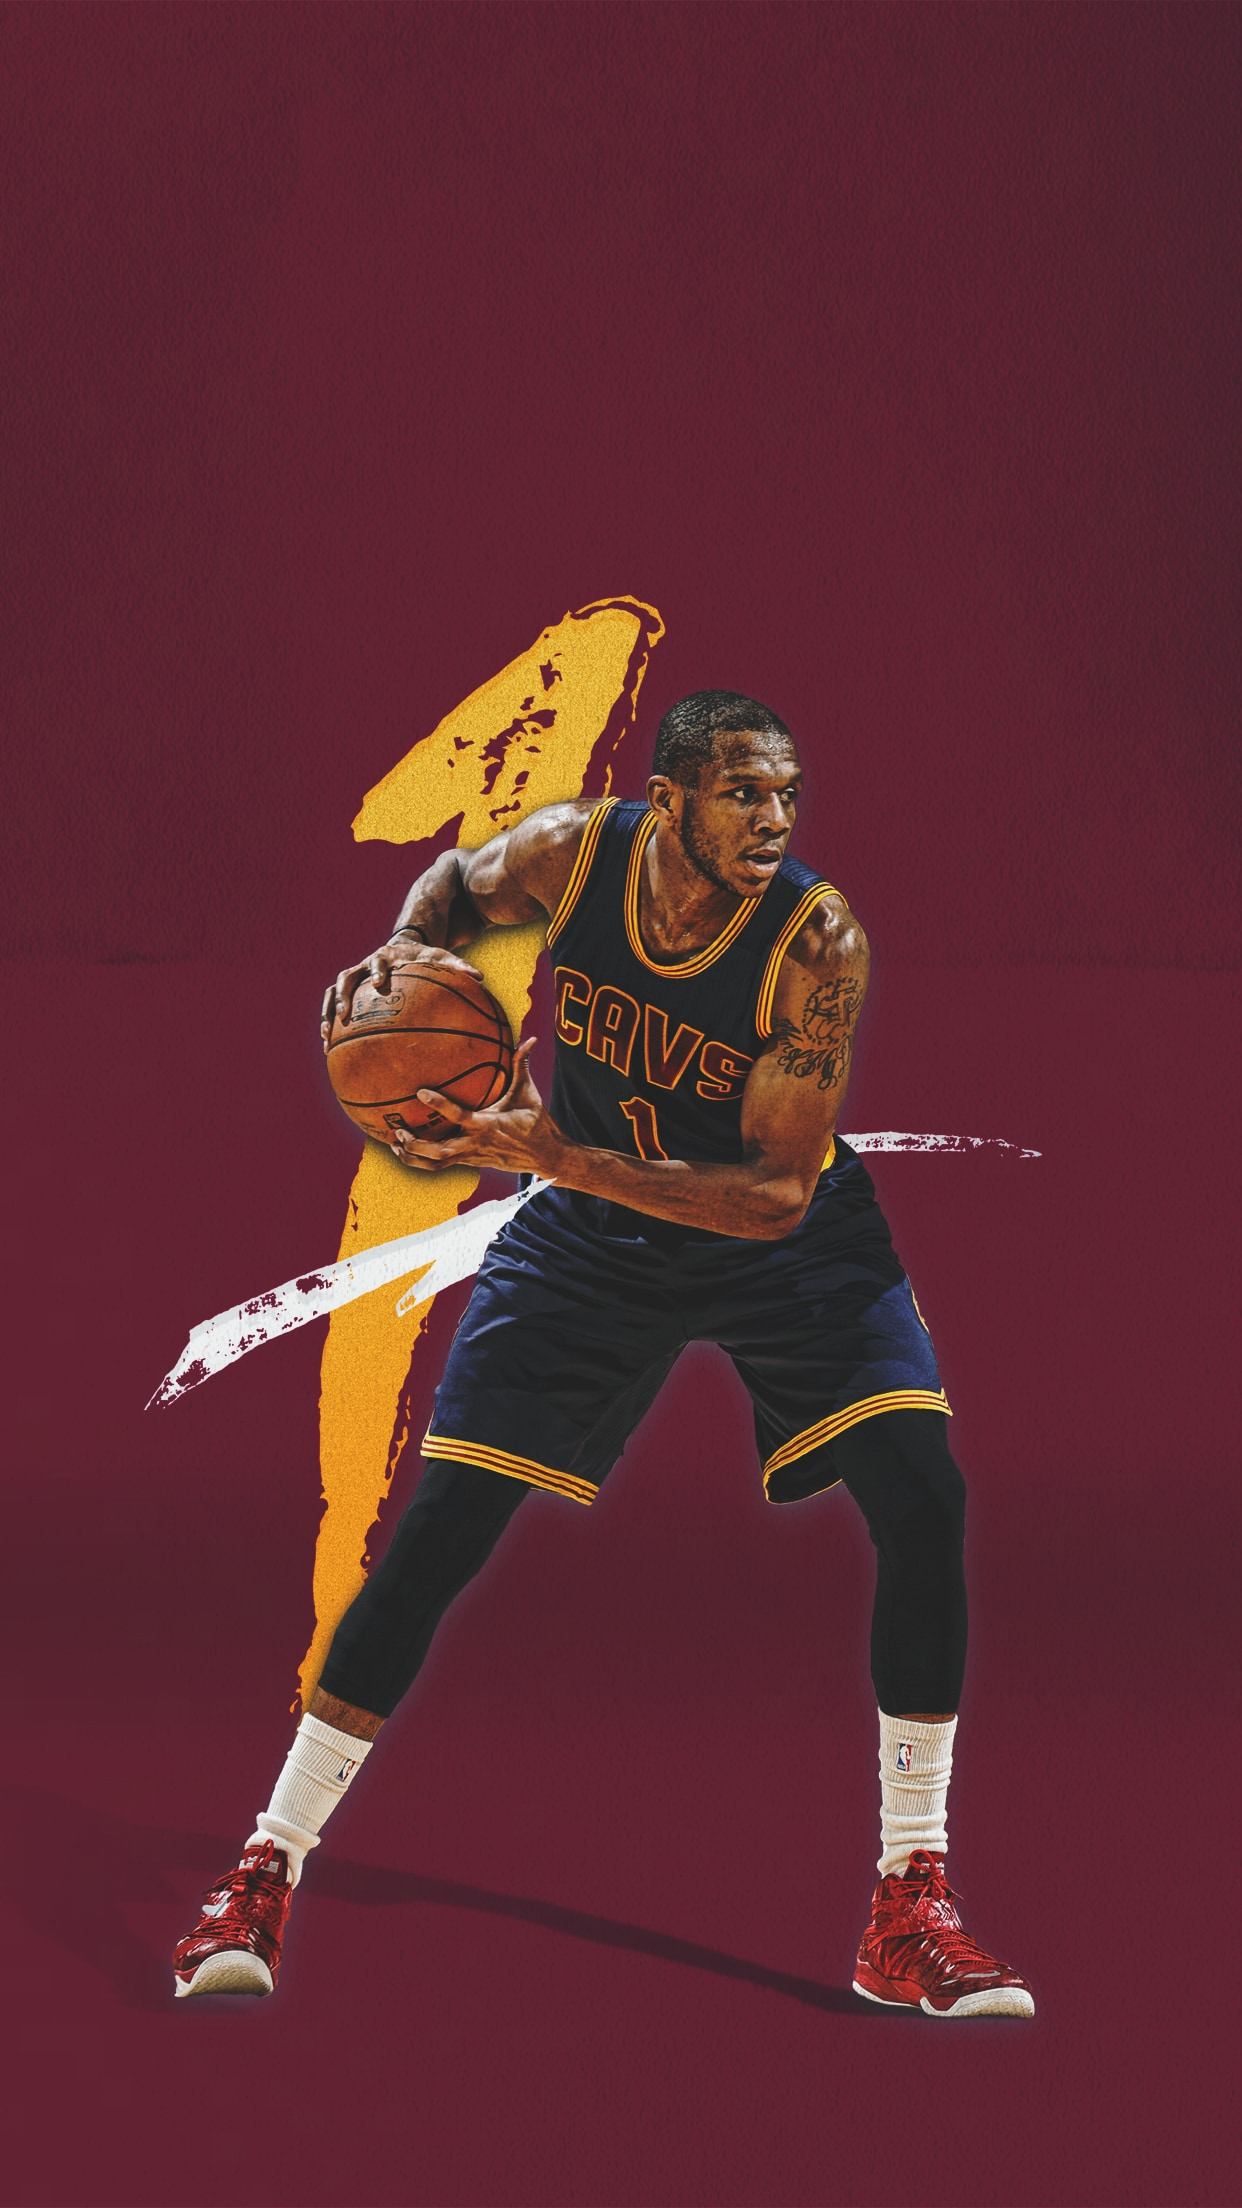 Lebron James Cavaliers Iphone Wallpaper For Kids